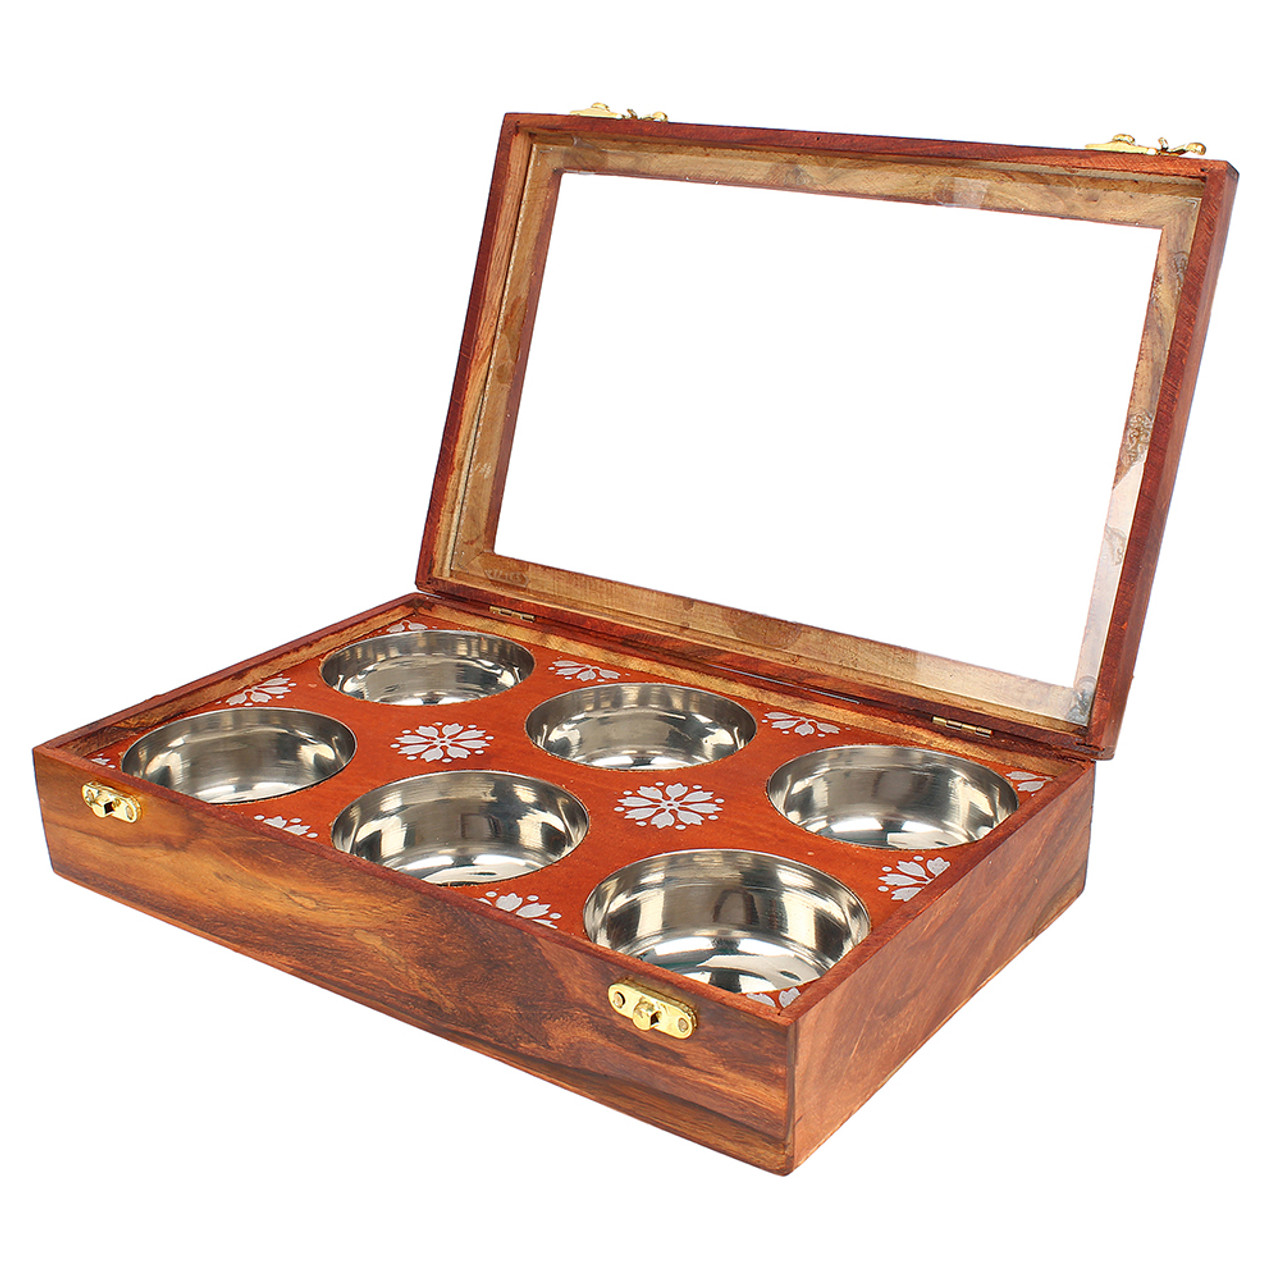 """12""""x8""""x3"""" Handmade Wooden Box with 6 Storage Bowls and Floral Brass Inlay - Image 4"""